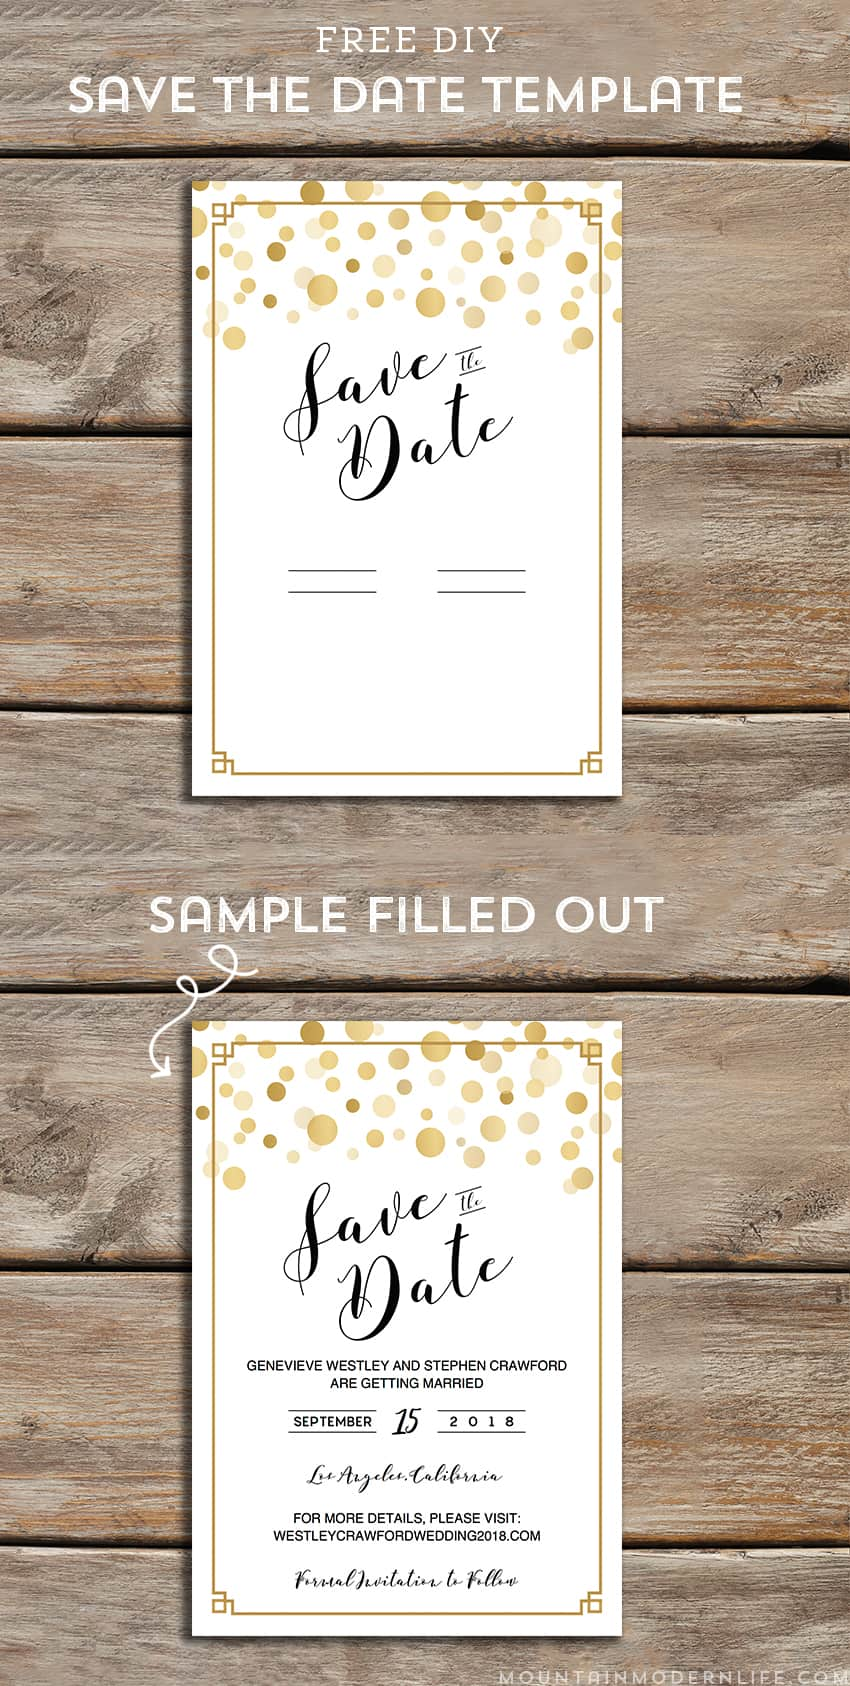 Modern DIY Save the Date FREE Printable | MountainModernLife.com